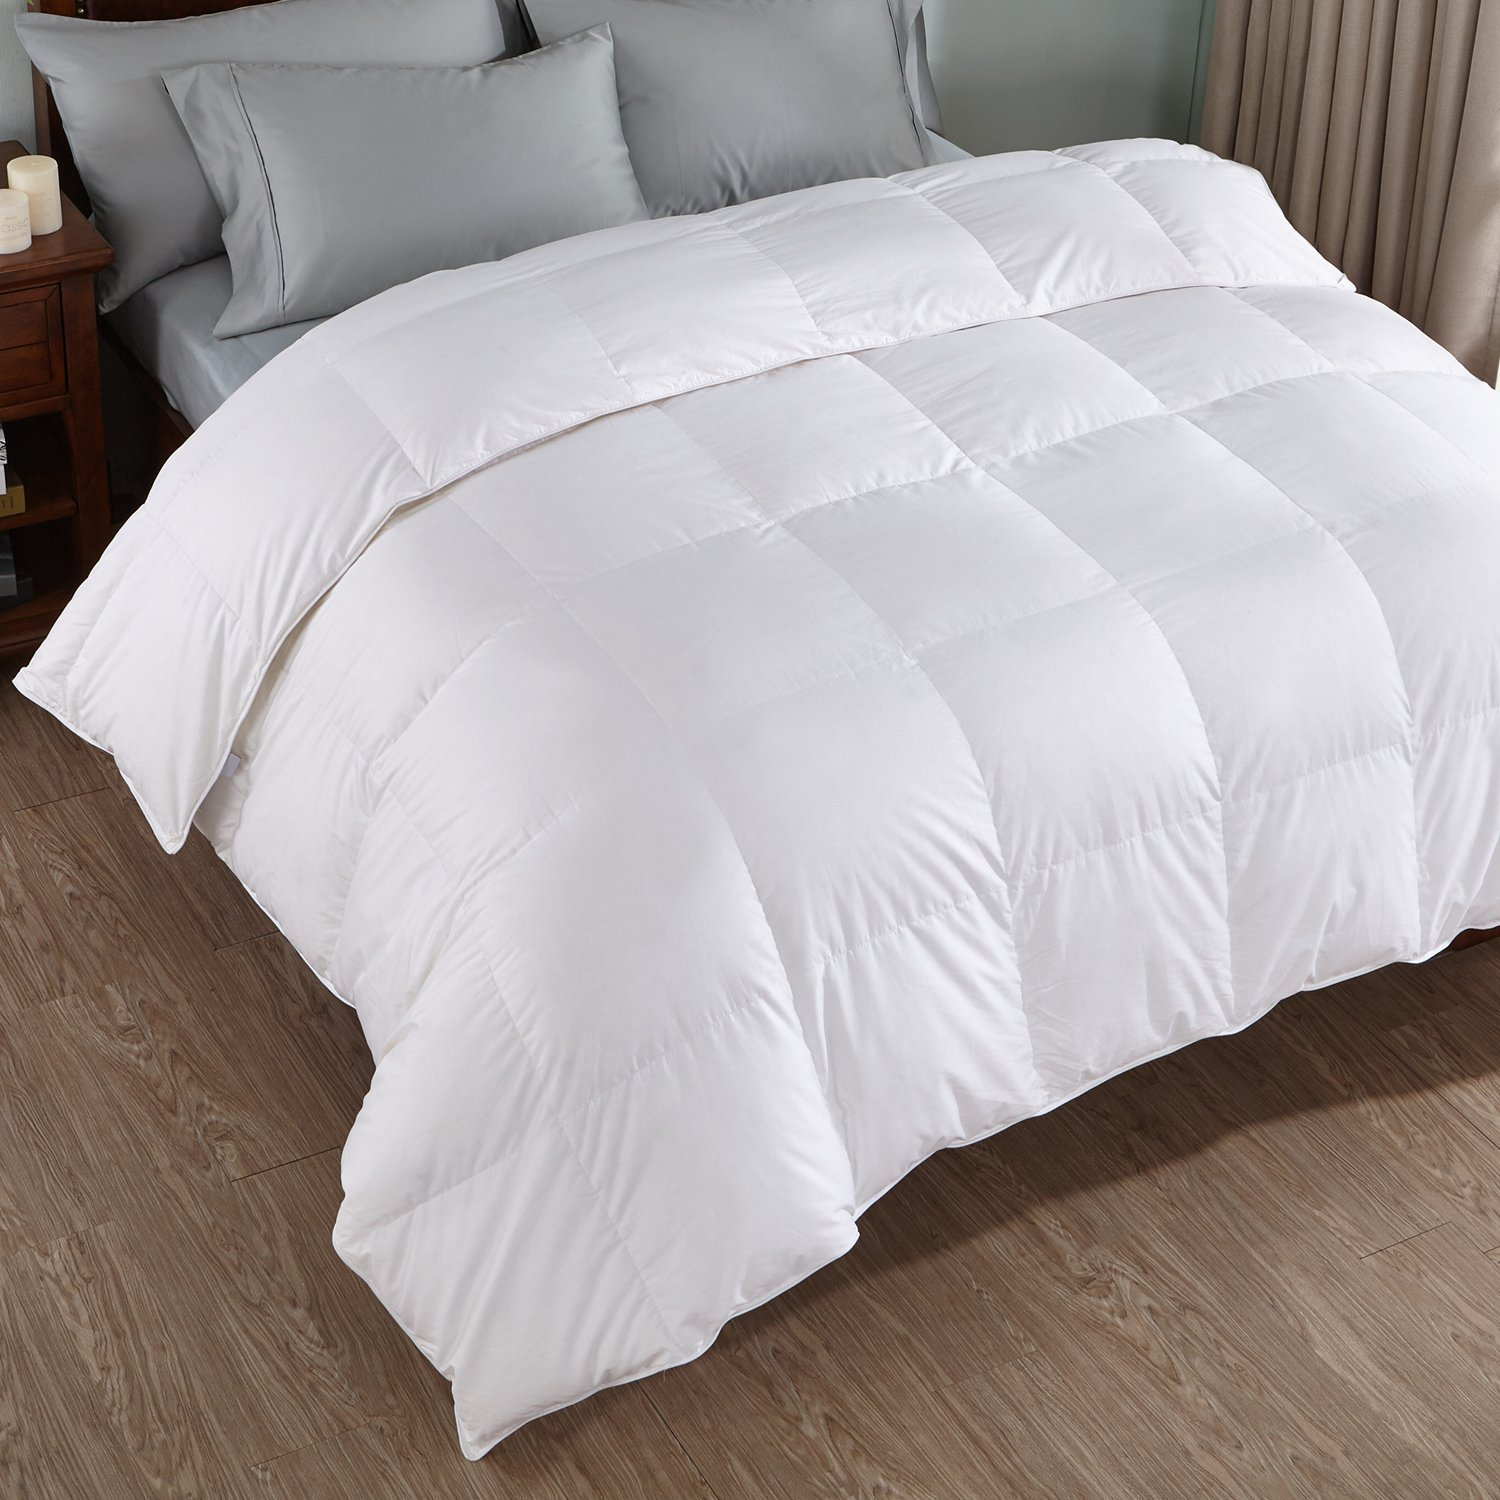 buy duvet comforter difference what set full to same best covers and queen duvets vs filled quilts between of size is comforters the bedding blanket type cover a down bed